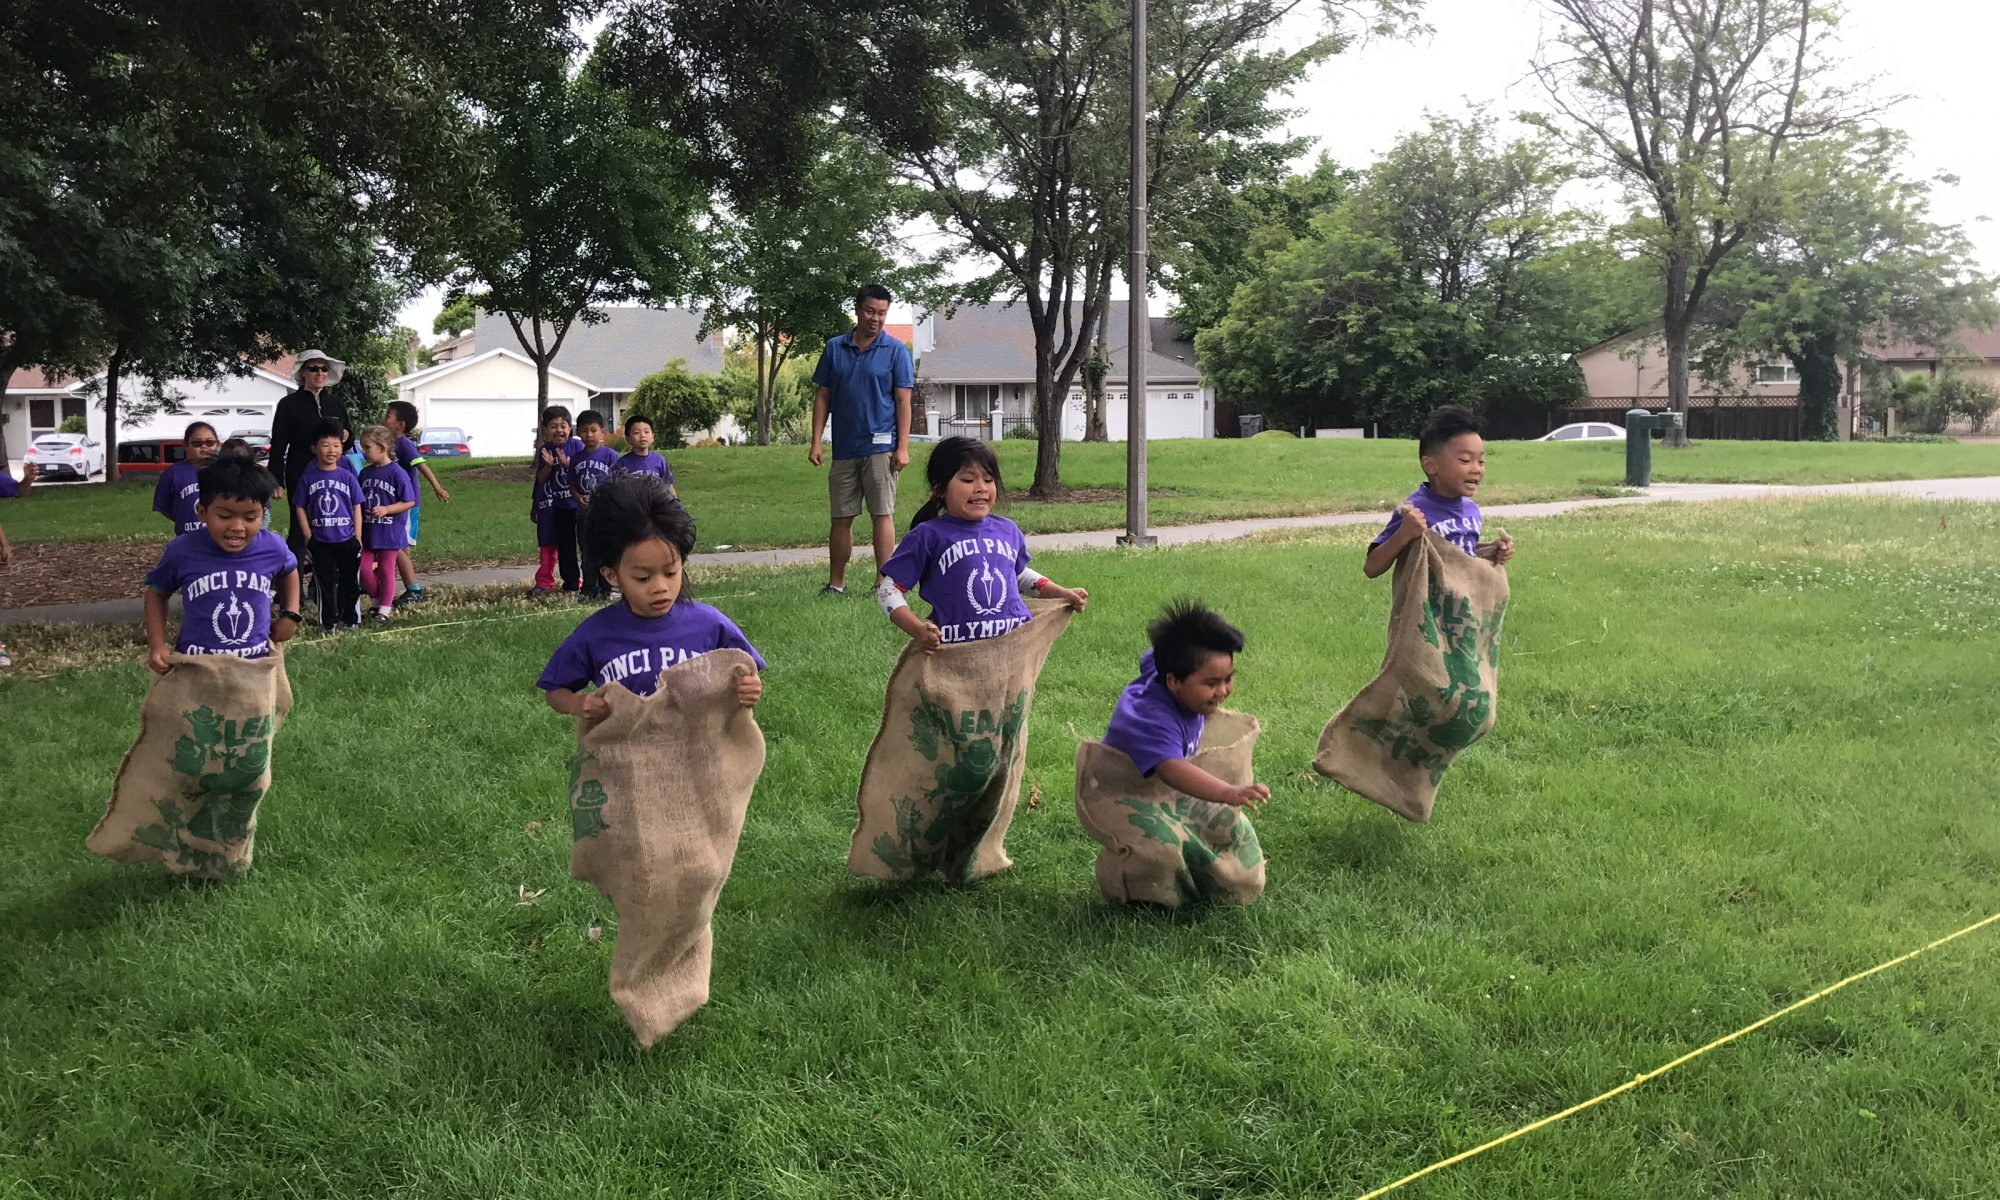 Kinder kids doing the sack race.